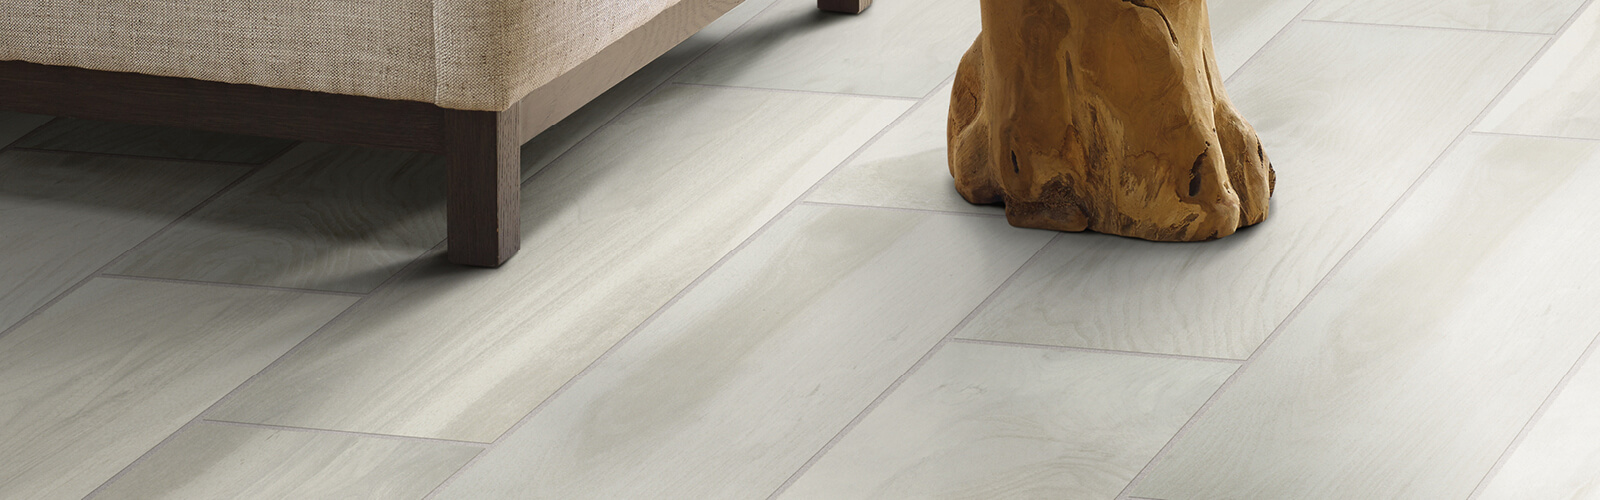 tile in living room | Independent Floor Covering